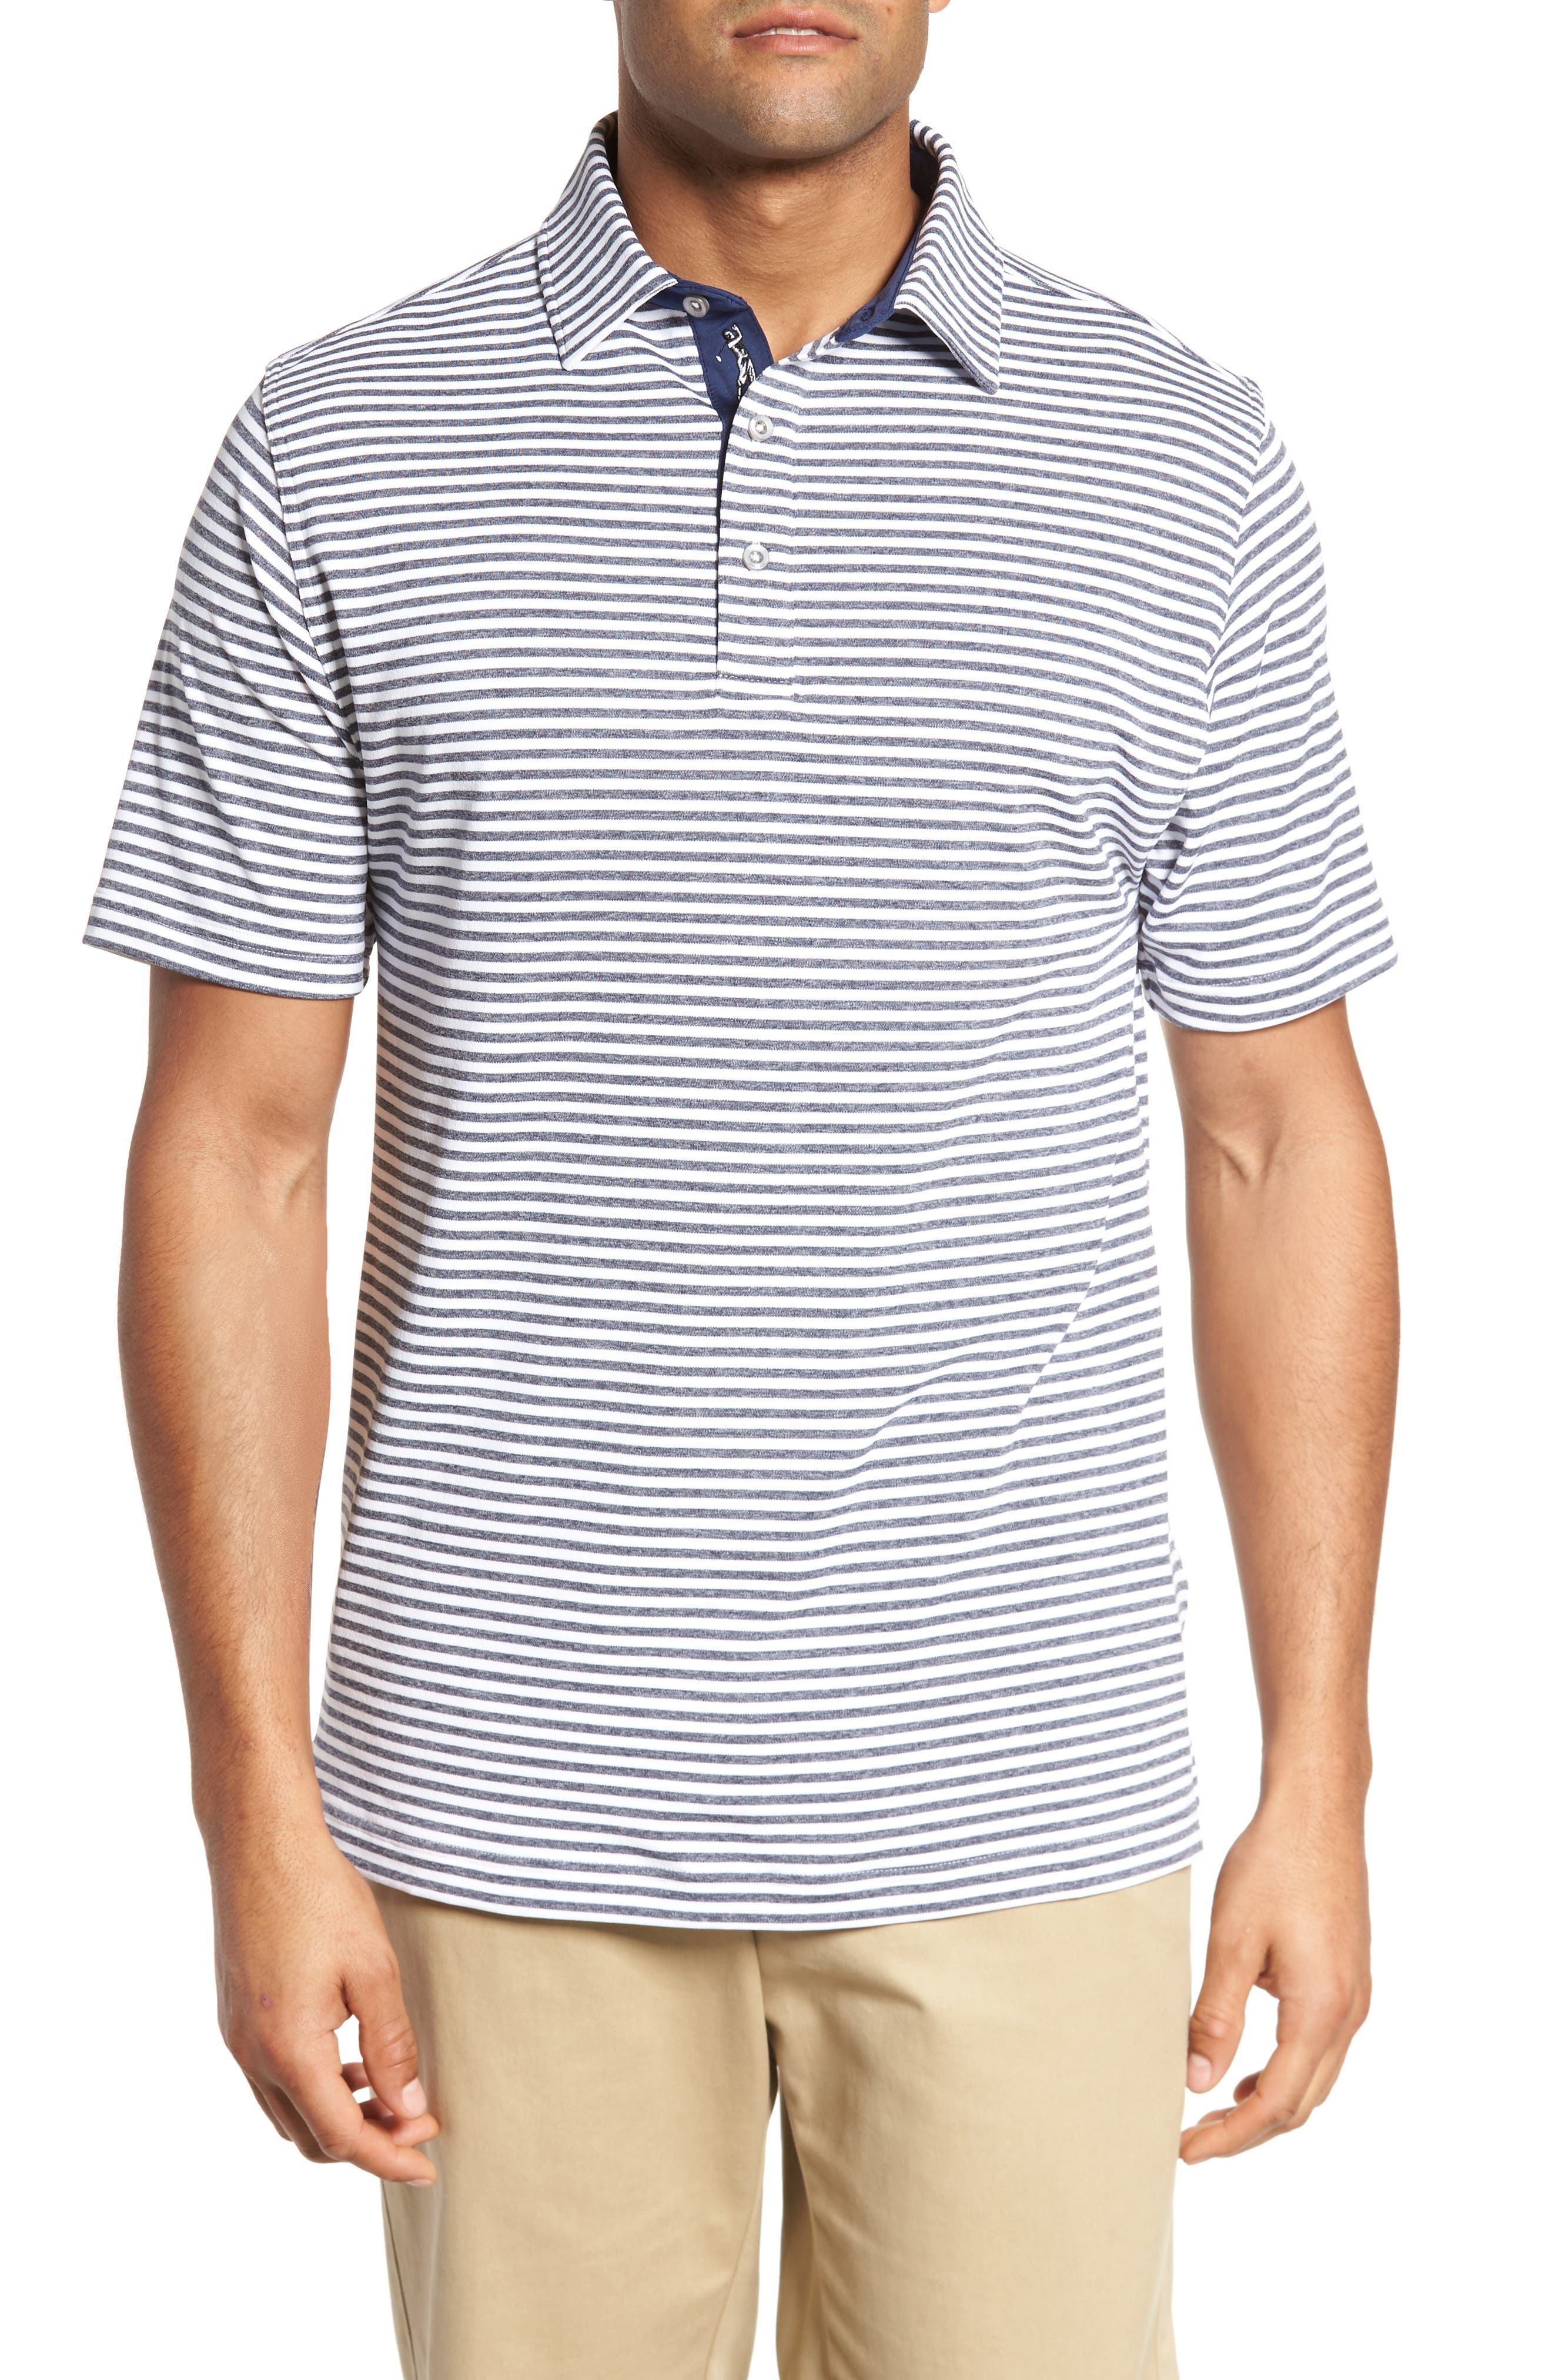 XH2O Tranquil Stripe Jersey Polo,                         Main,                         color, 100